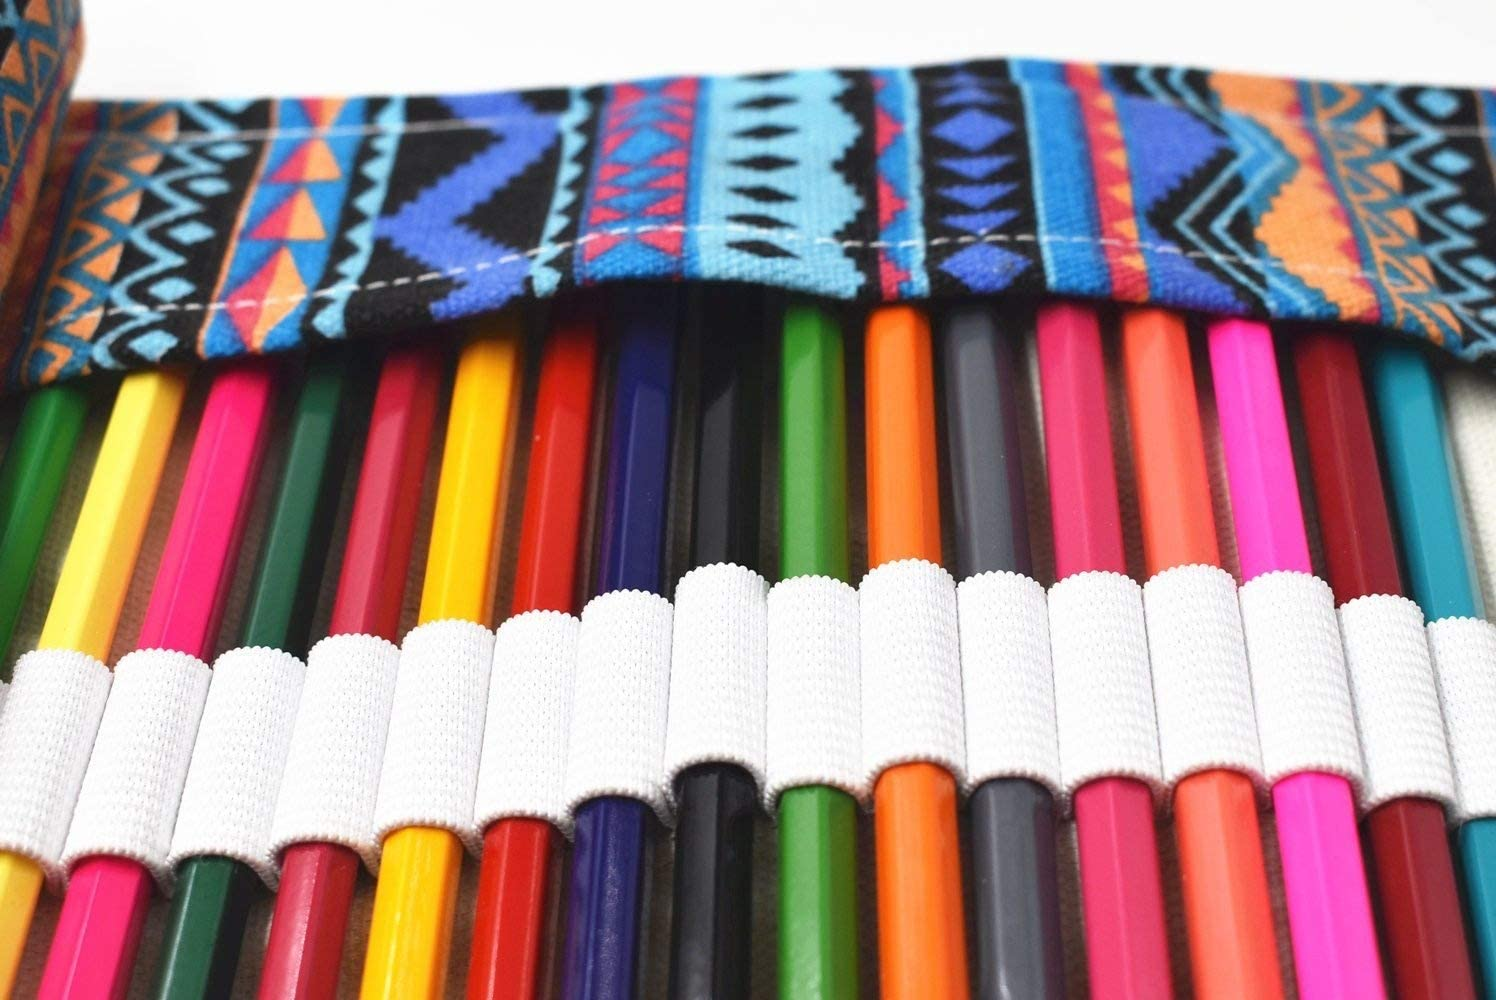 raylinedo 36 l 246 cher canvas pencil wrap roll up